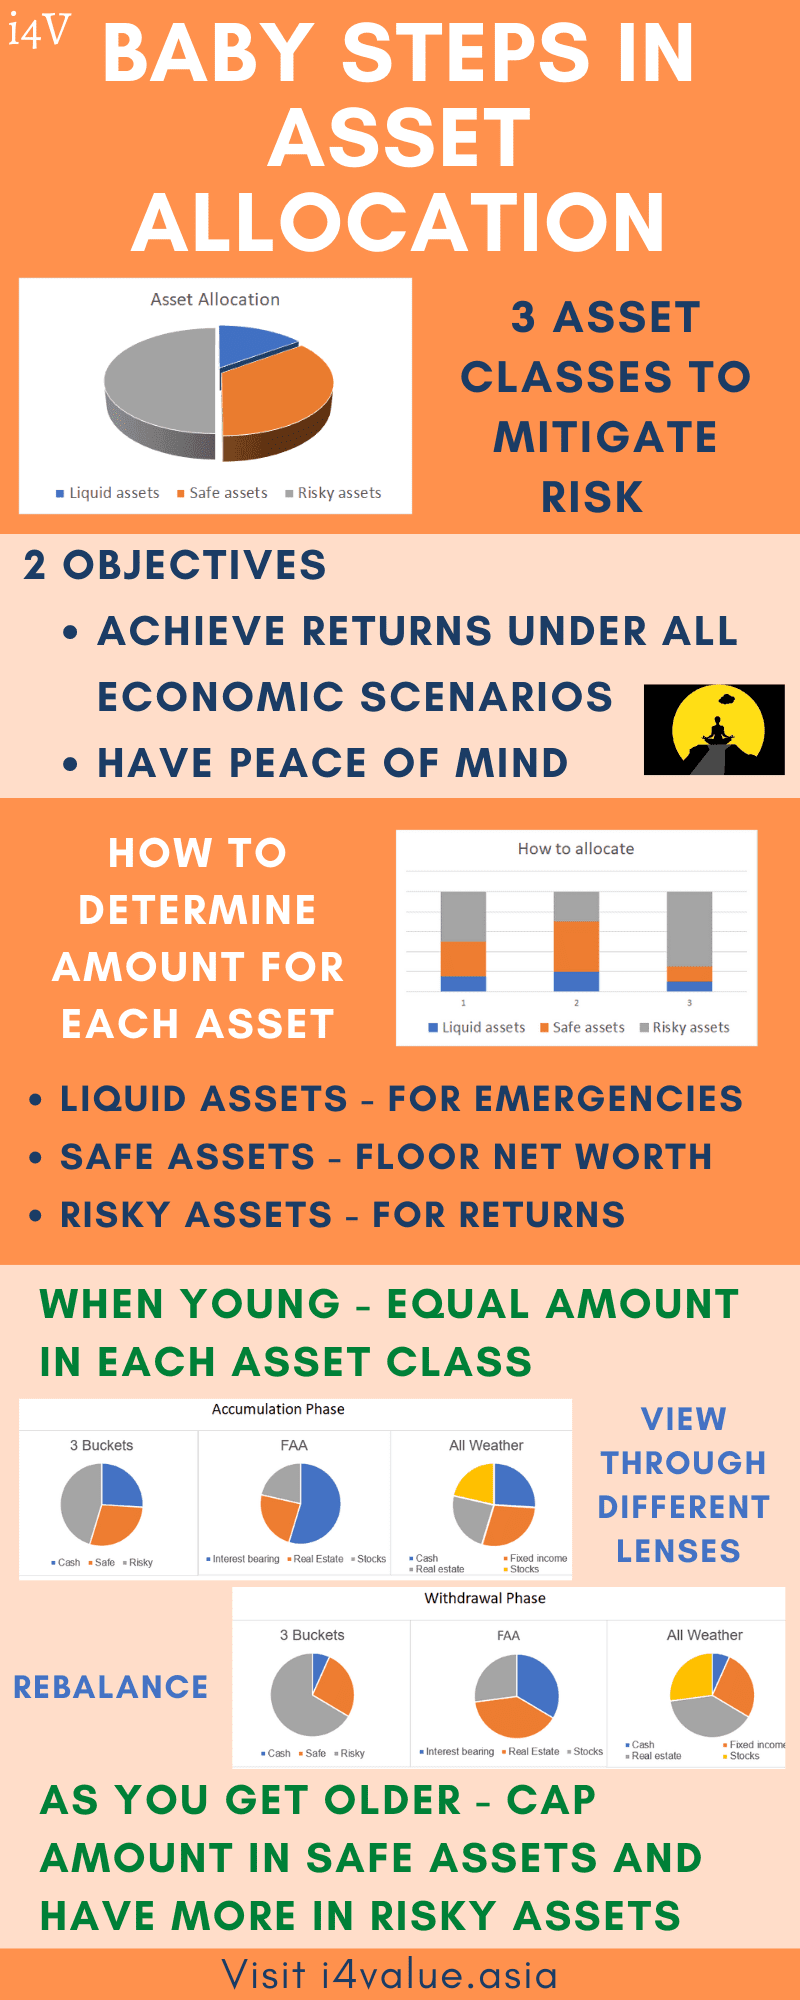 Baby steps in asset allocation